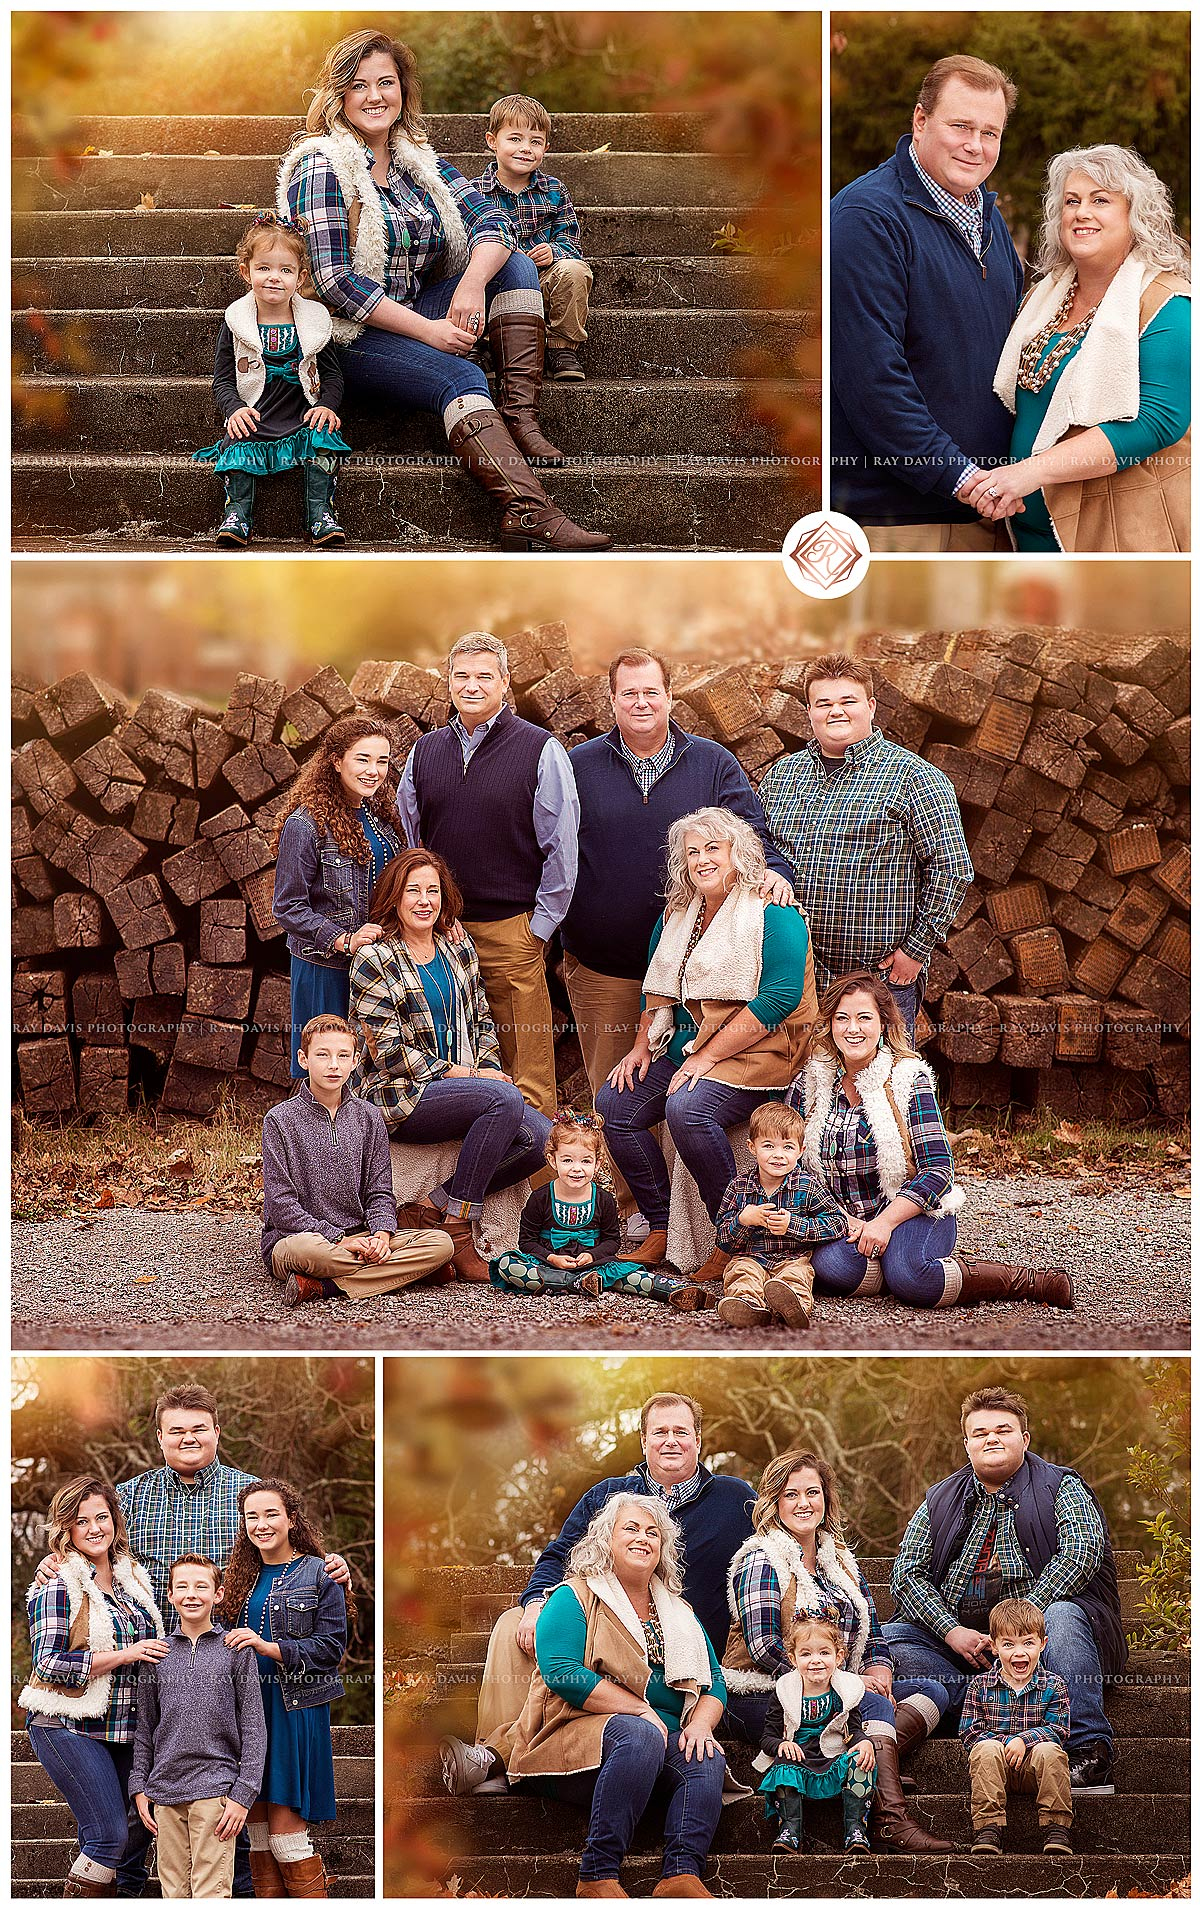 Family Fall pictures of large extended family in Louisville KY by Ray Davis Photography